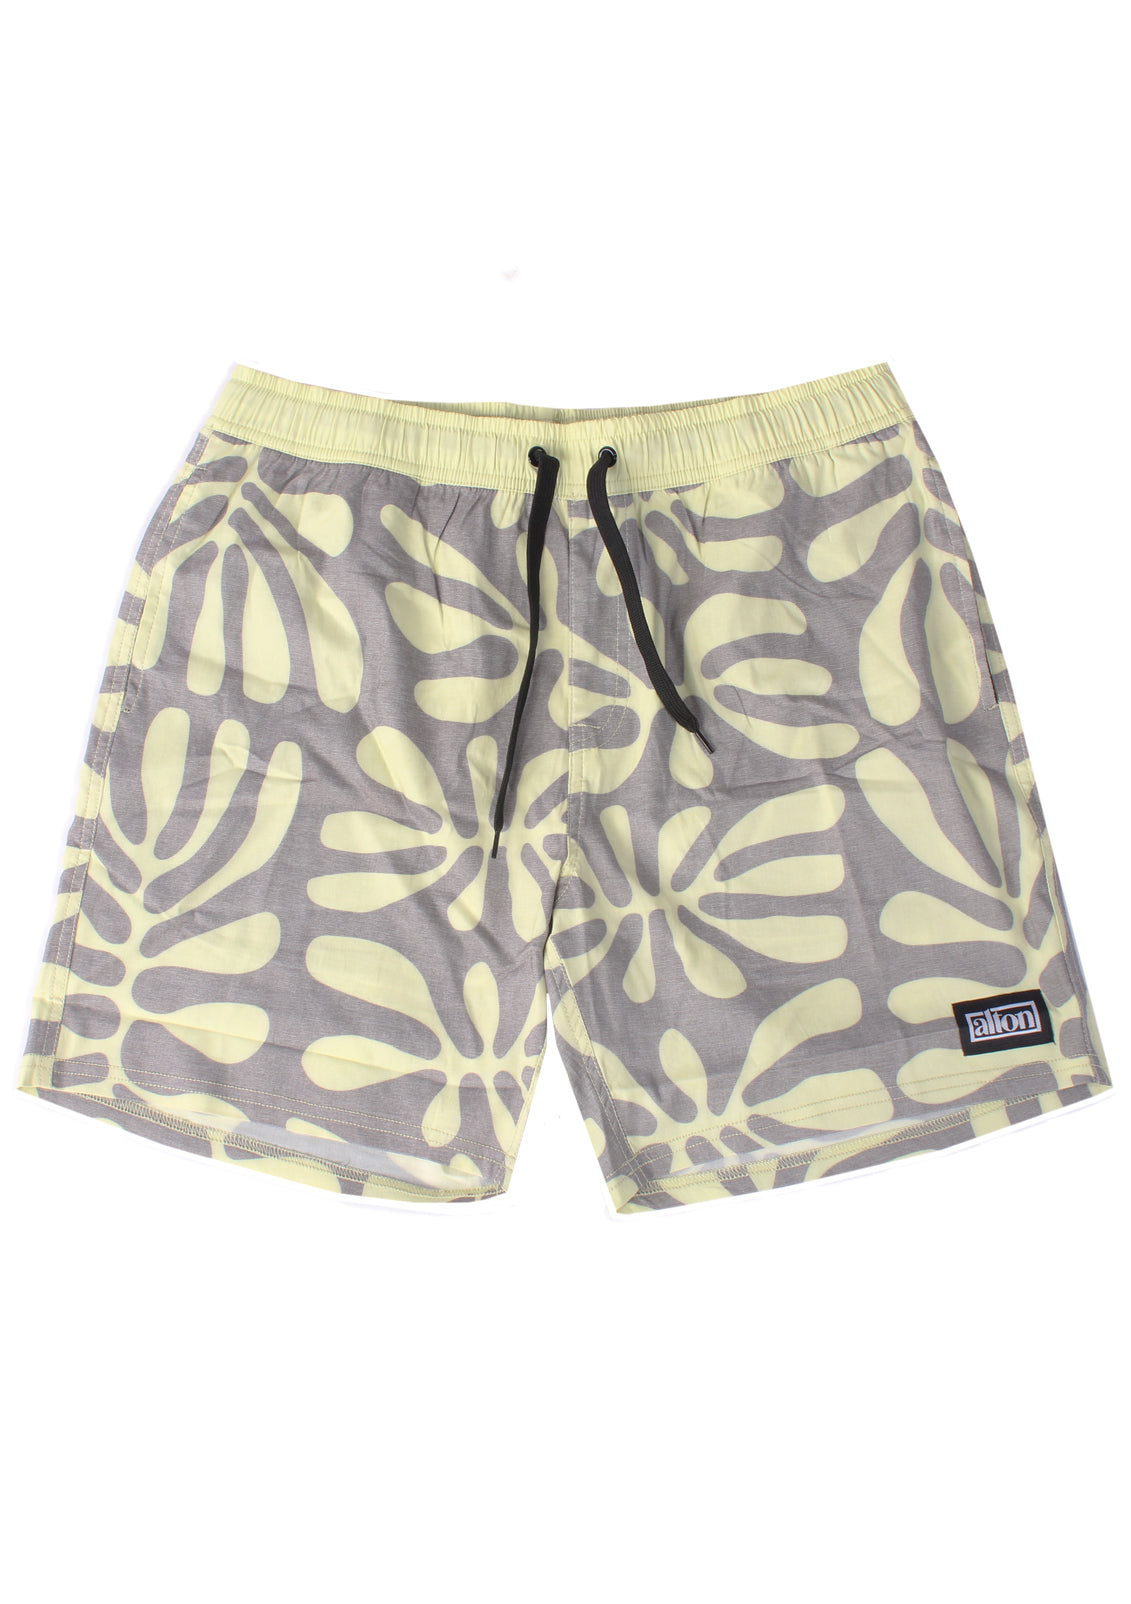 Alton Leap Boardshort